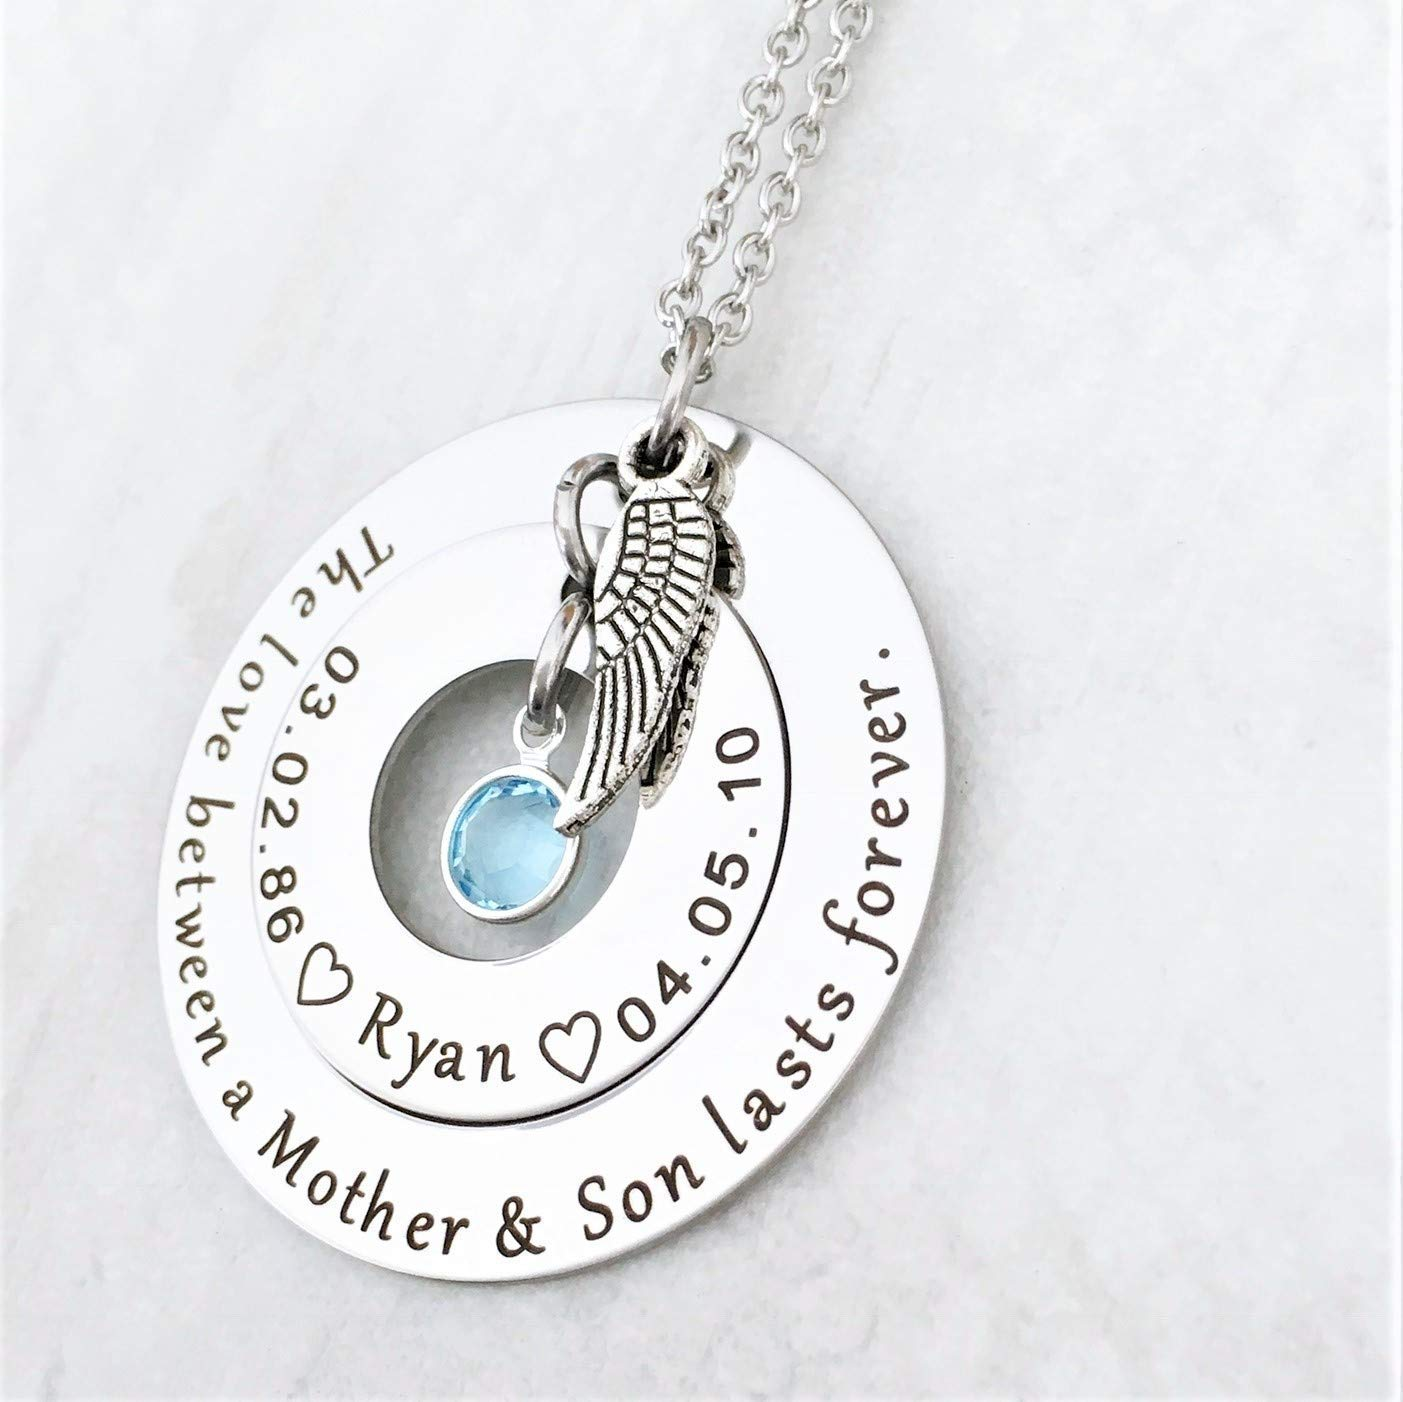 9d894da78fa95 Loss of a Son Memorial Necklace for Mom - The love between a Mother & Son  lasts Forever